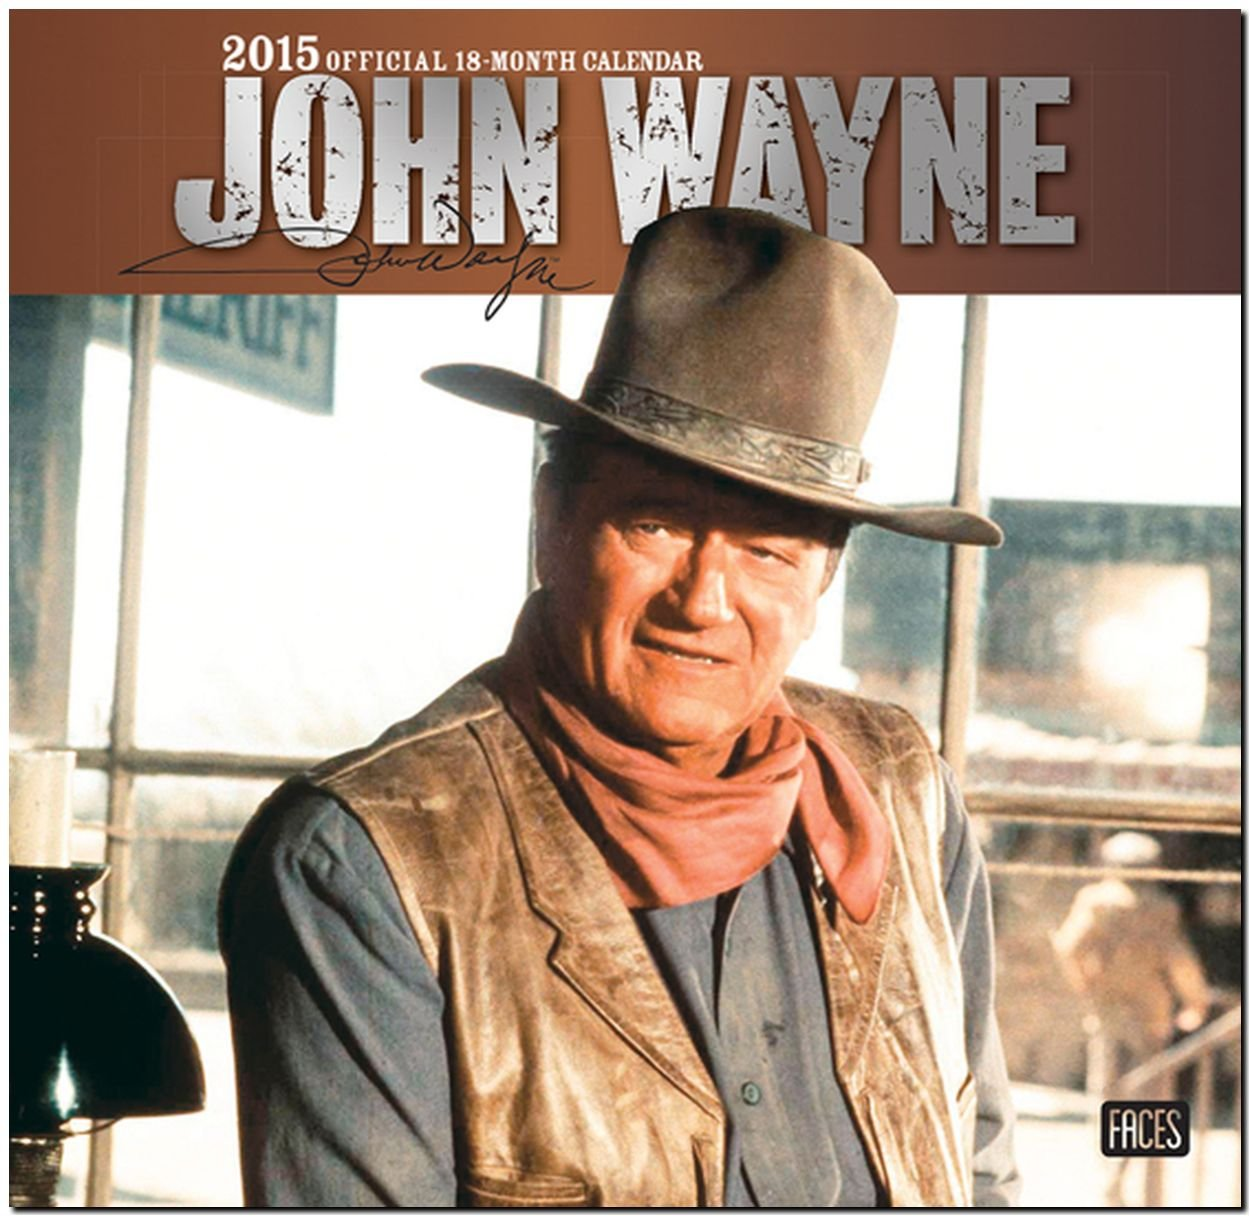 John Wayne 2015 Square 12x12 Faces (ST-Silver Foil) (Multilingual Edition)